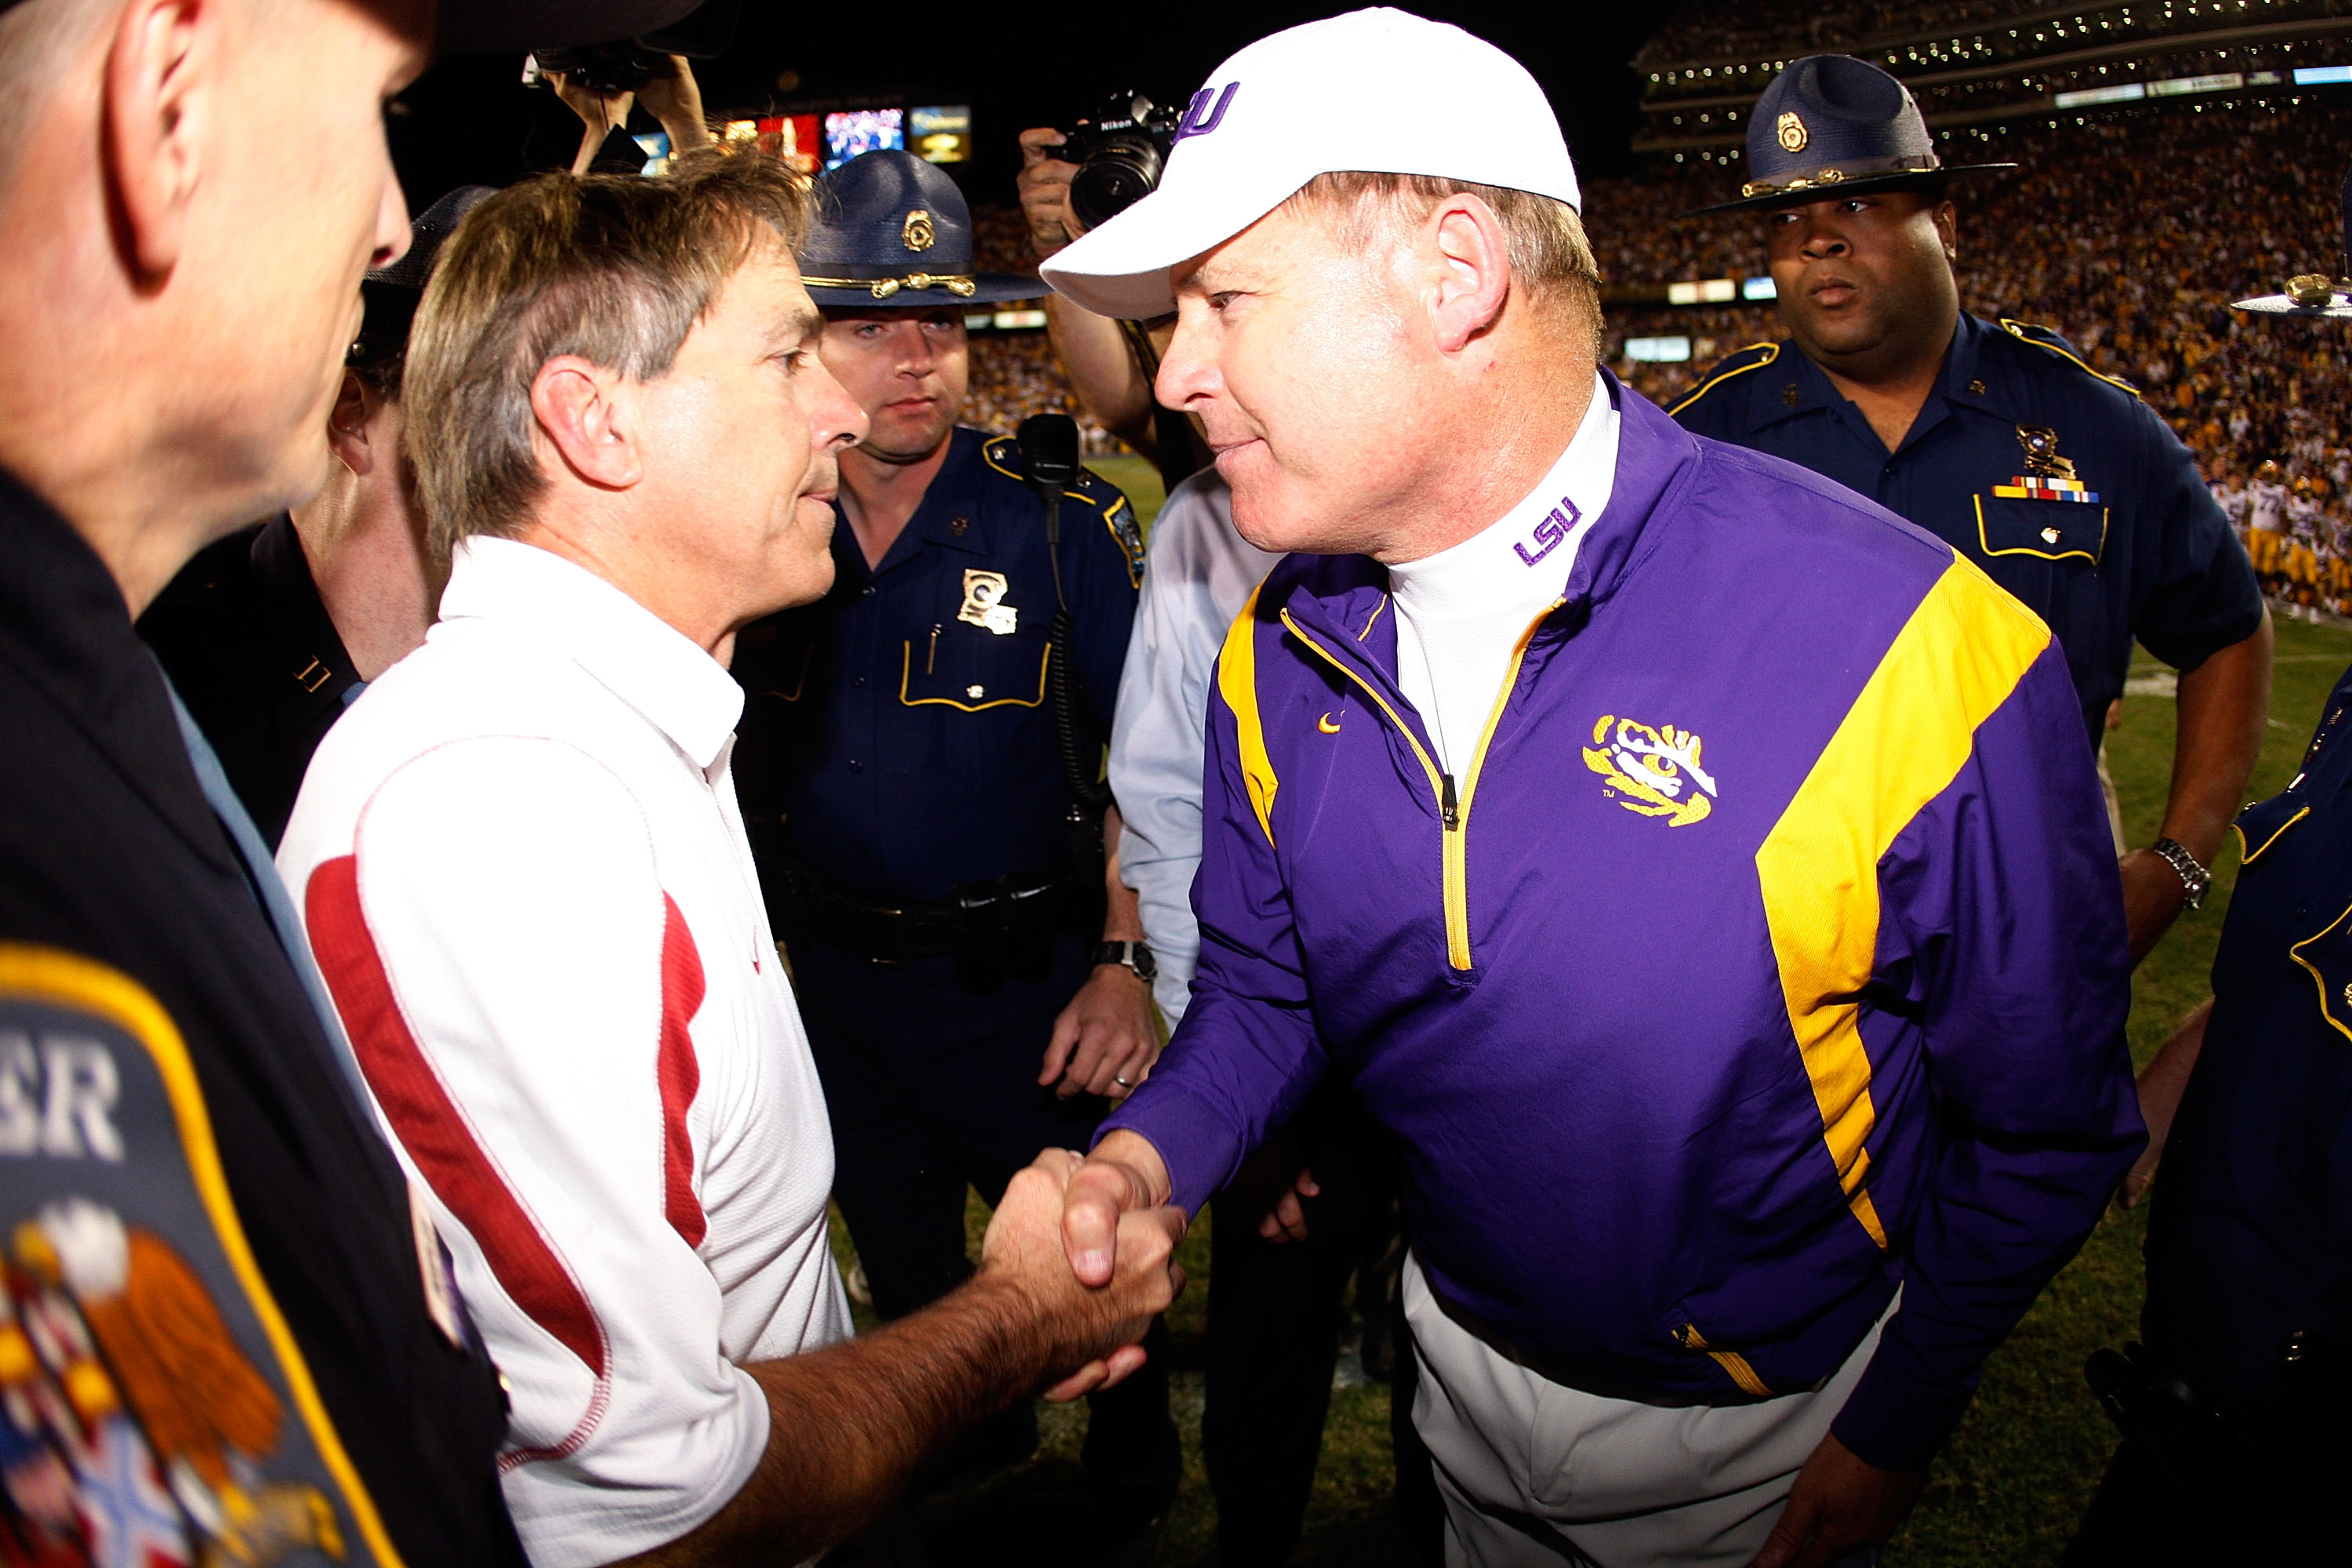 BATON ROUGE, LA - NOVEMBER 08:  Head Coach Nick Saban of the Alabama Crimson Tide is congratulated by head coach Les Miles of the Louisiana State University Tigers after the Tide defeated the Tigers 27-21 in overtime on November 11, 2008 at Tiger Stadium